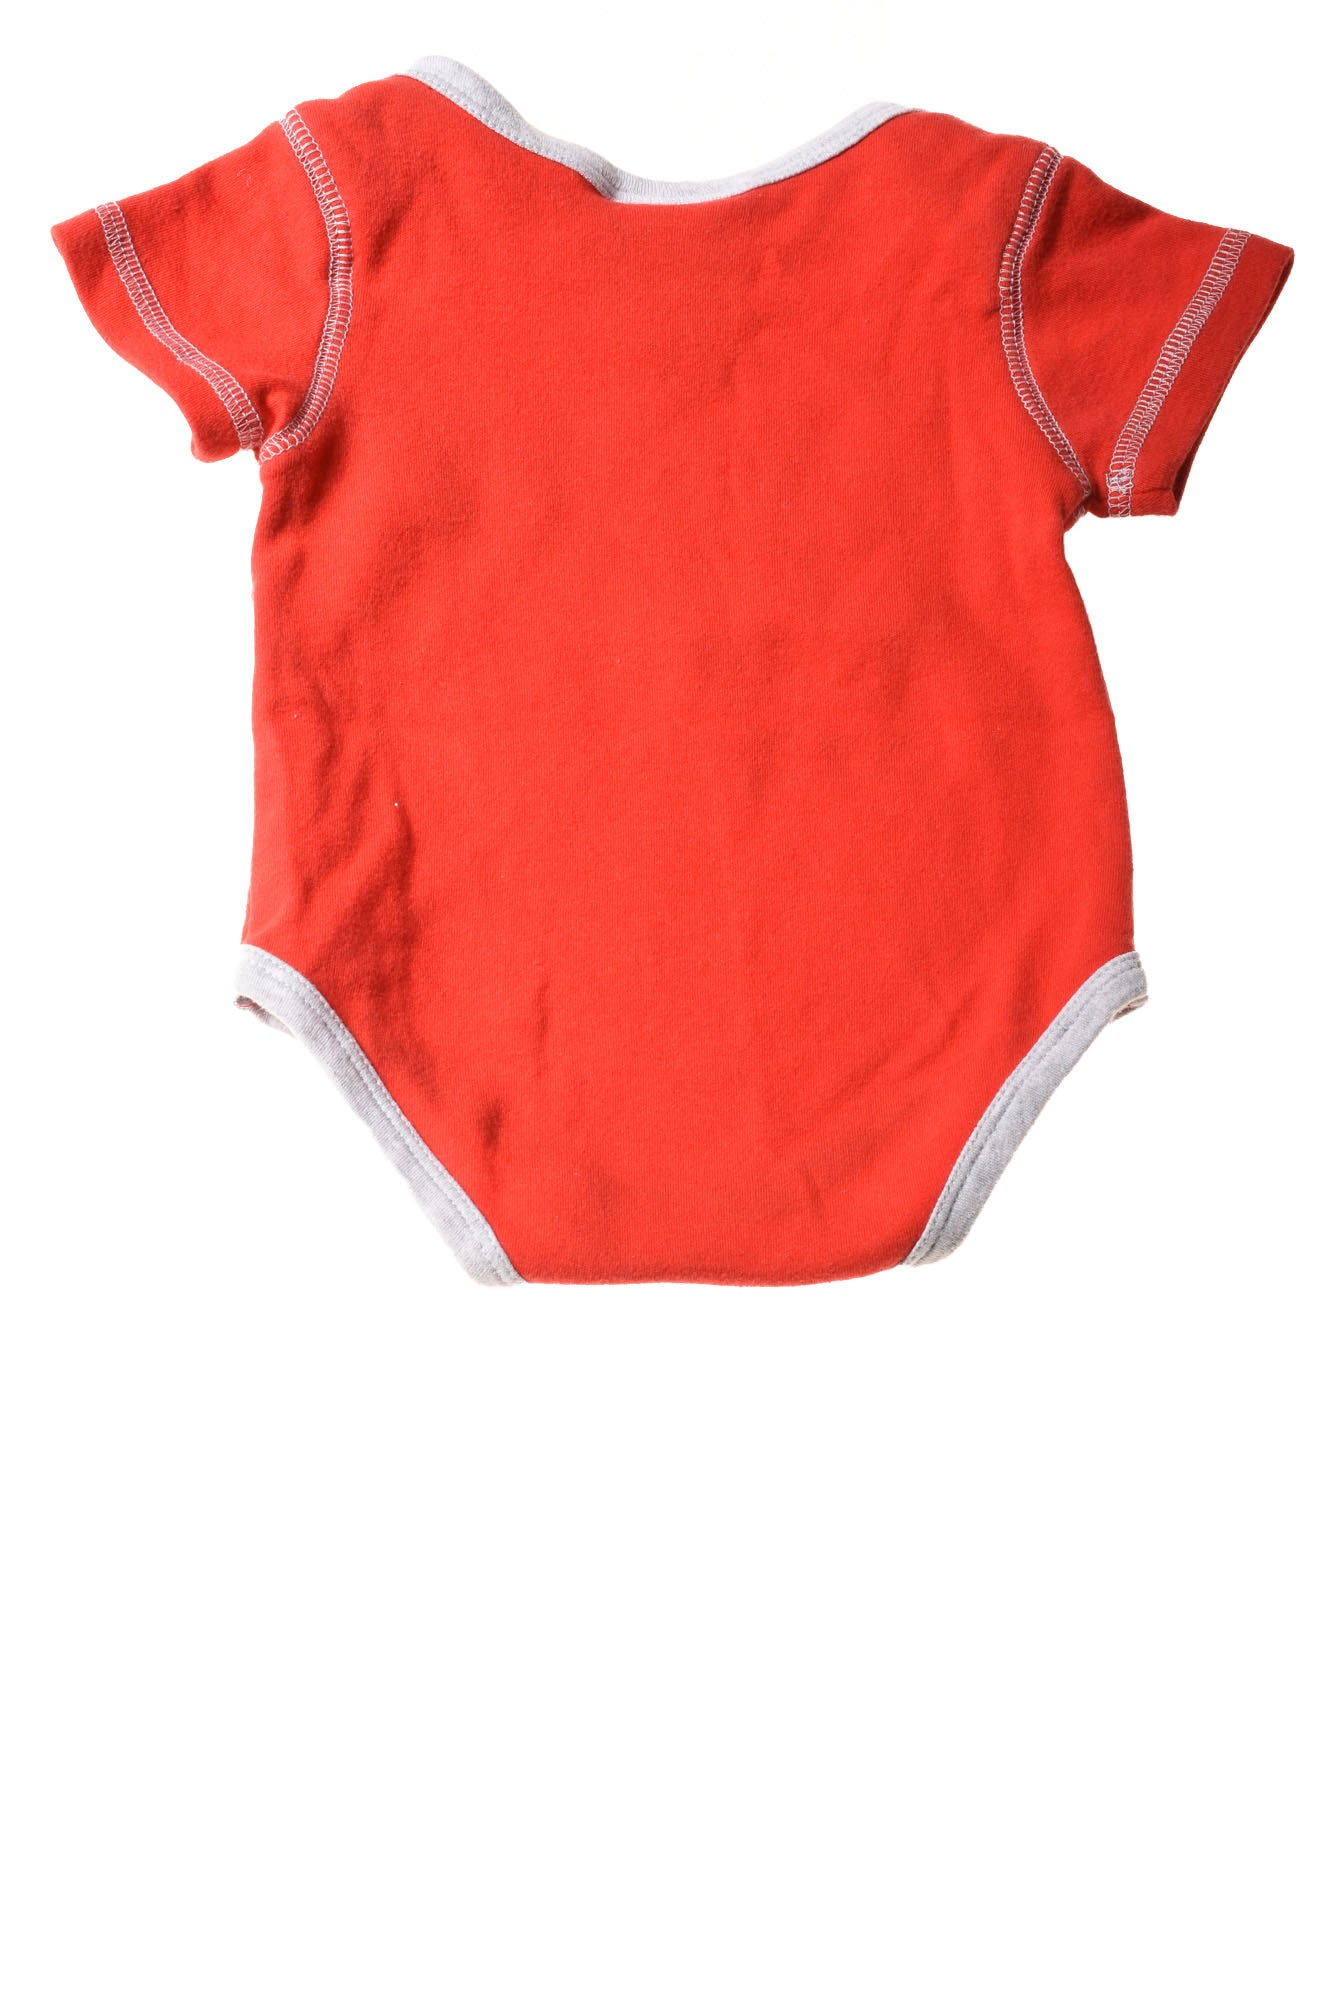 USED Outer Stuff Baby Boy s Body Suit 0 3 Months Red Village